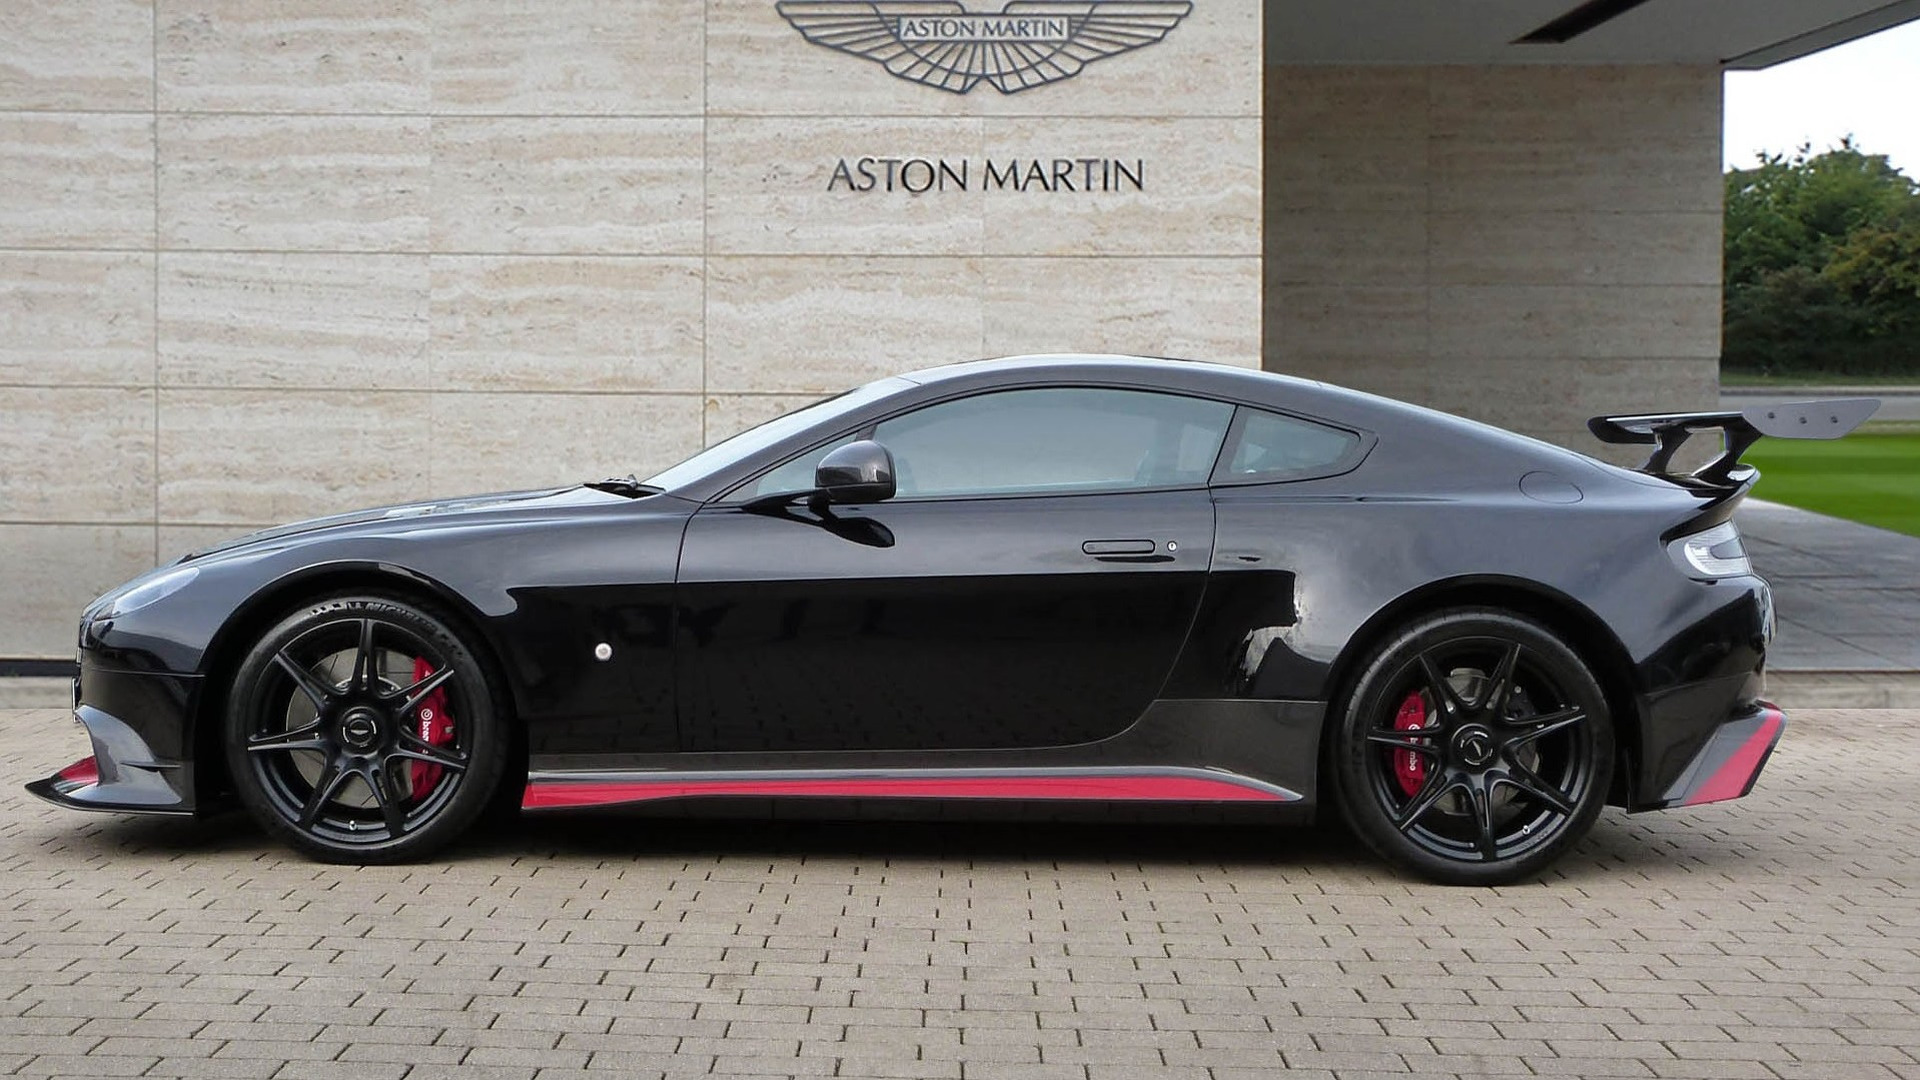 Aston Martin Gt8 >> Aston Martin Vantage Gt8 Costs Way More Now Than When It Was New